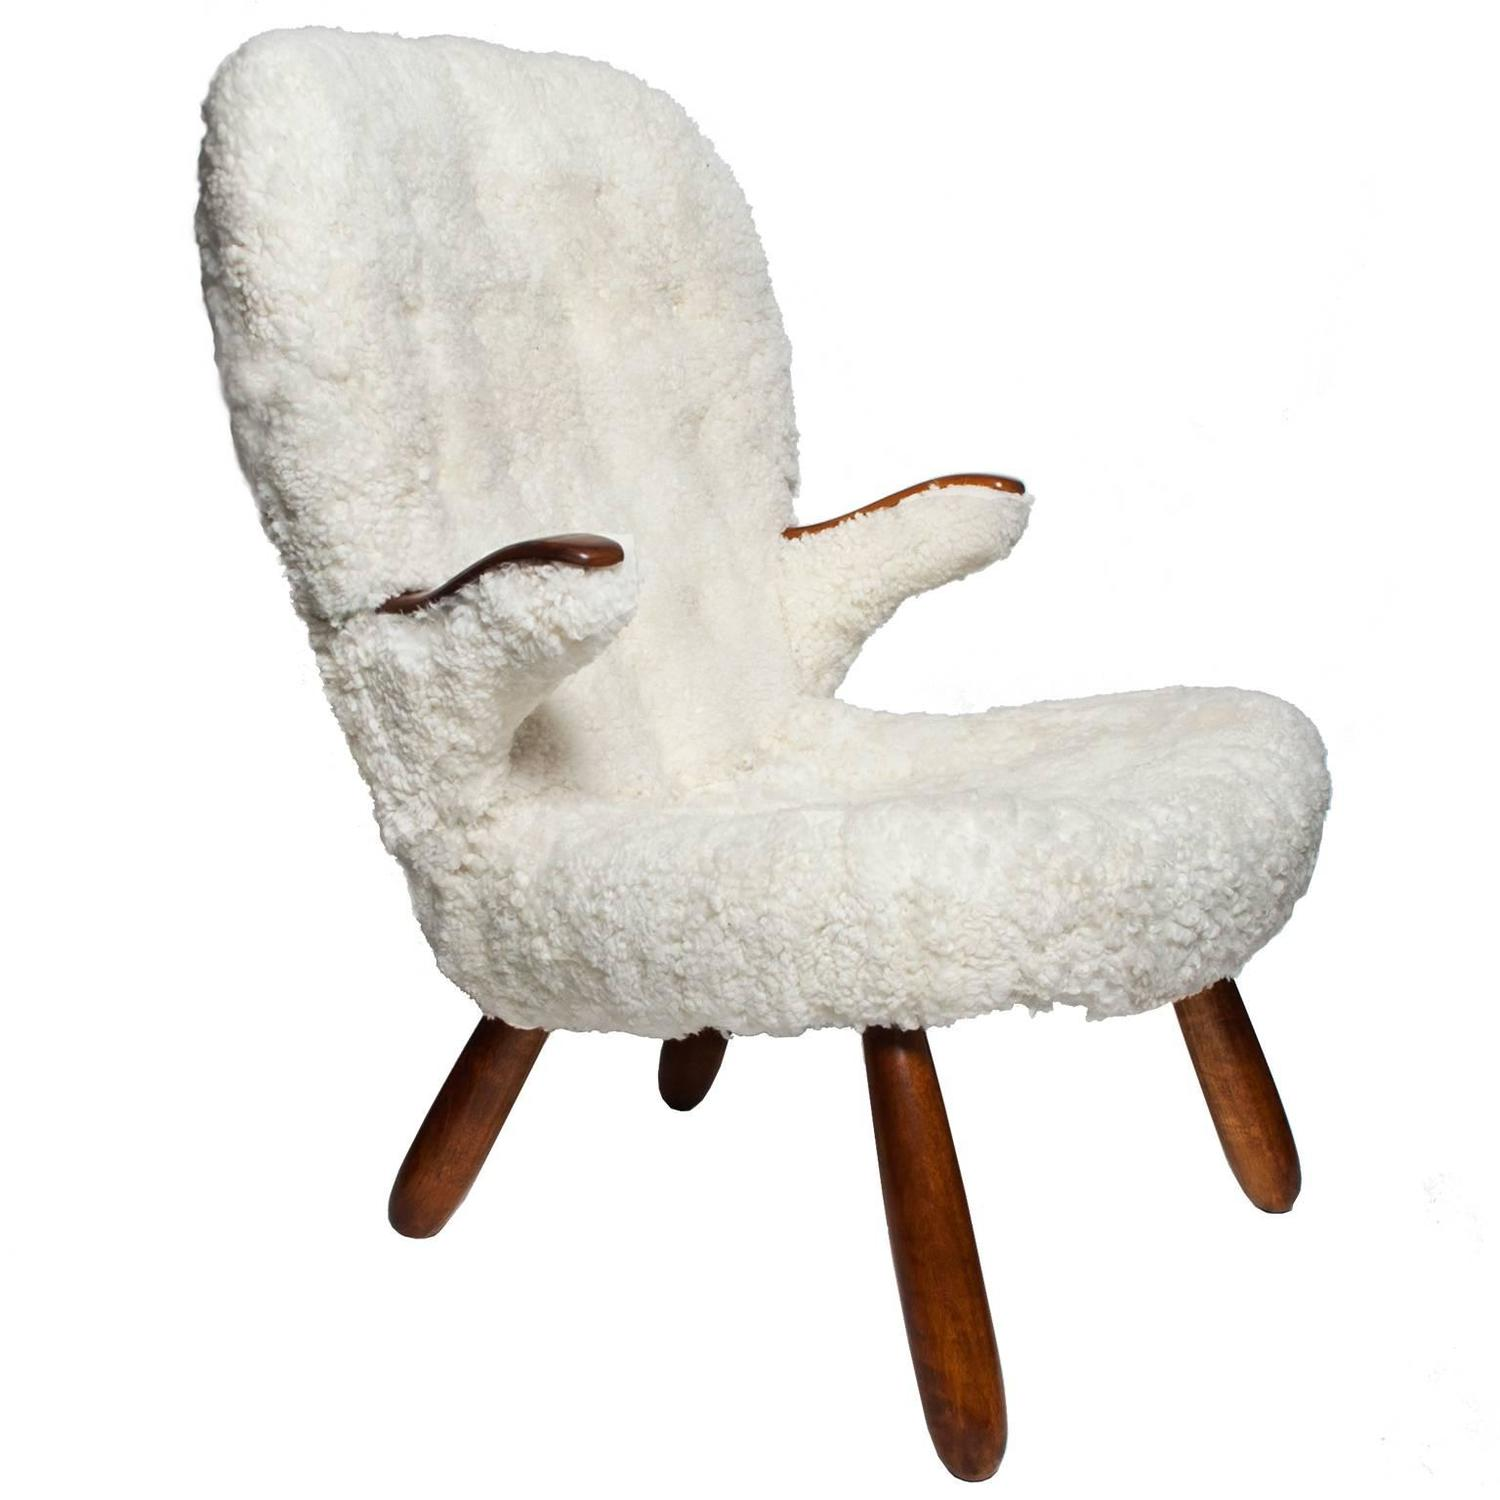 Scandinavian Modern Armchair With Sheepskin Upholstery By Philip Arctander For At 1stdibs